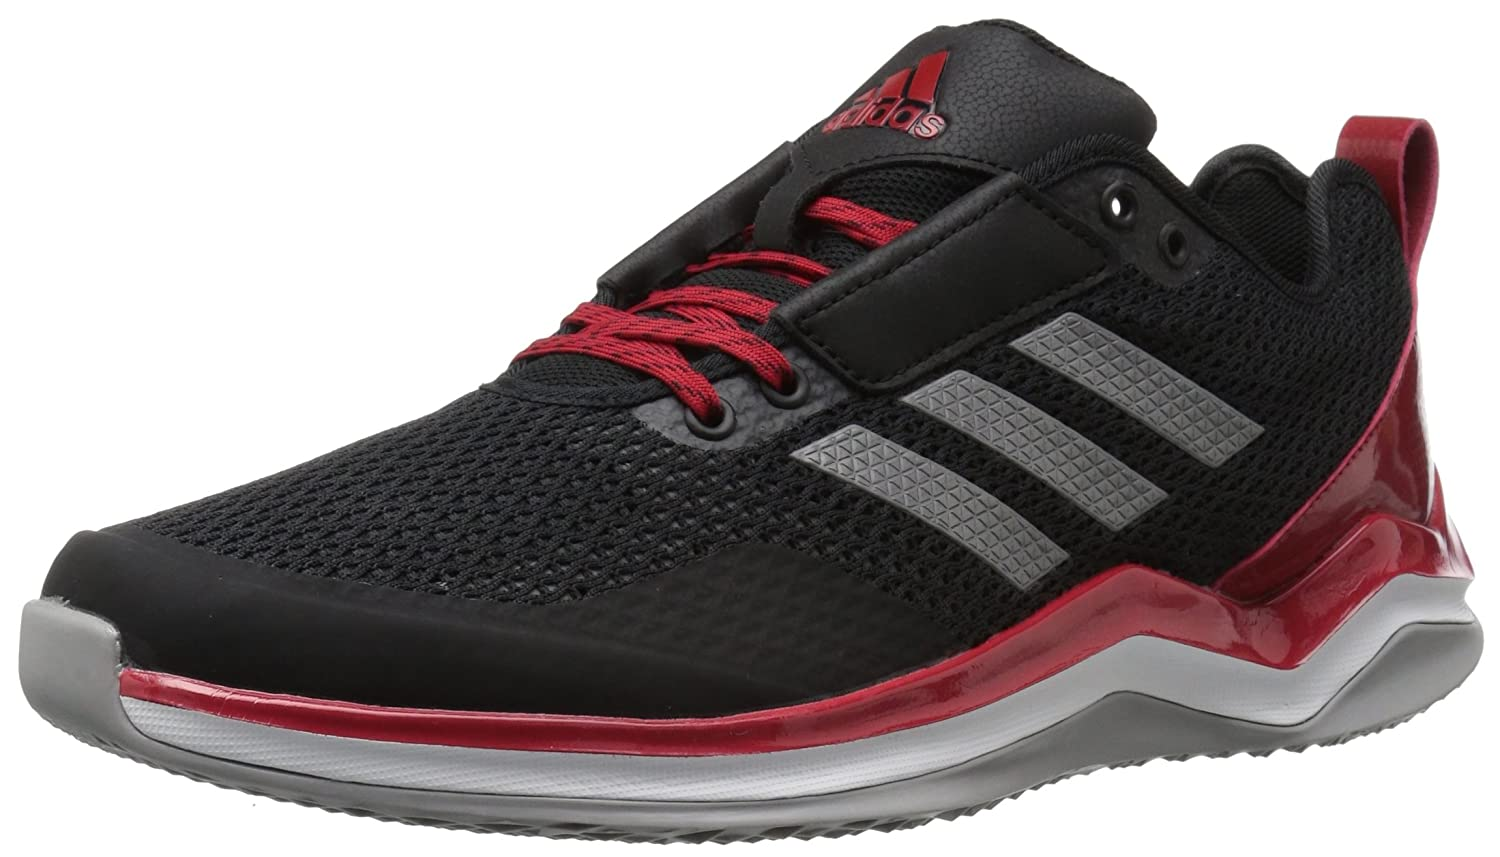 noir Iron Power rouge 37 1 3 EU Adidas Speed Trainer 3.0 Synthétique paniers